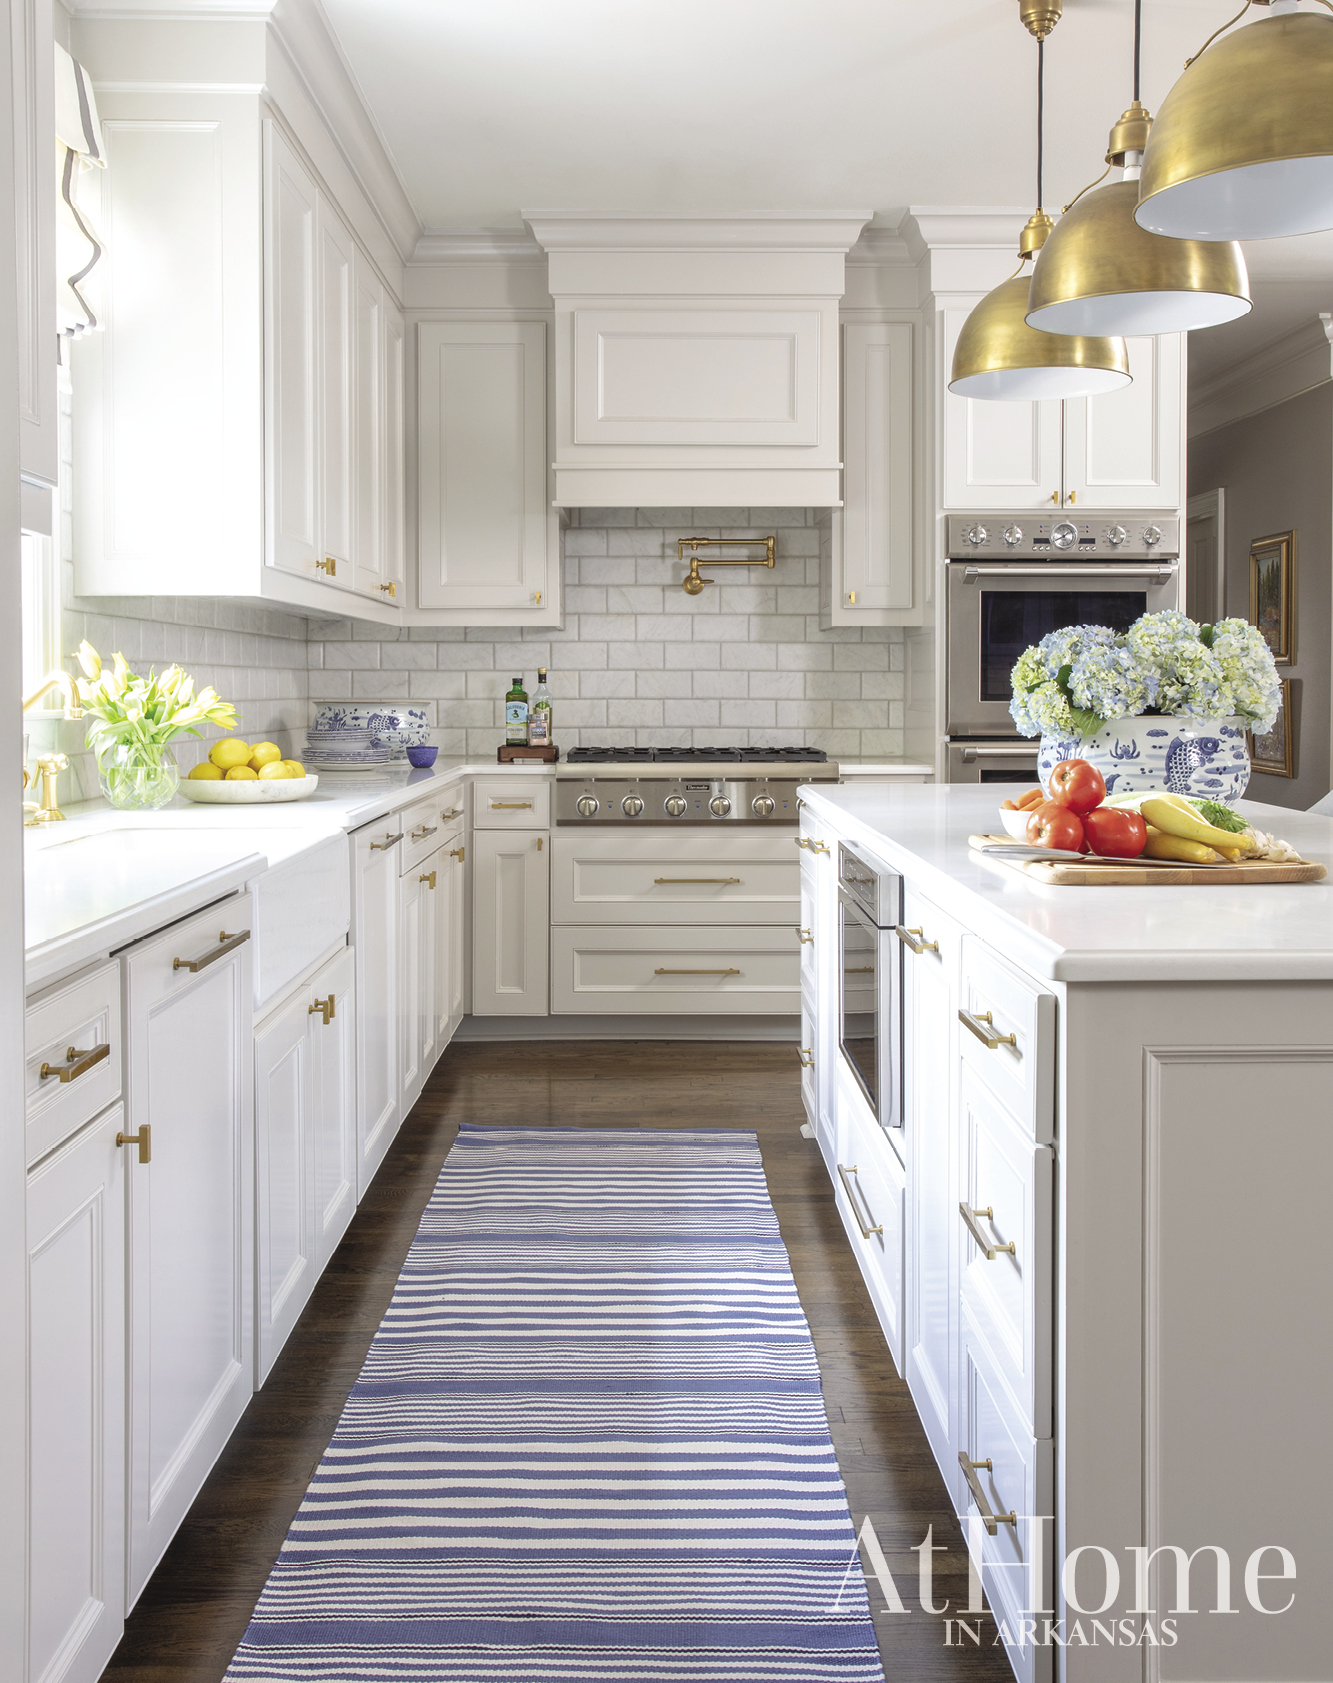 Traditional Transformed At Home In Arkansas